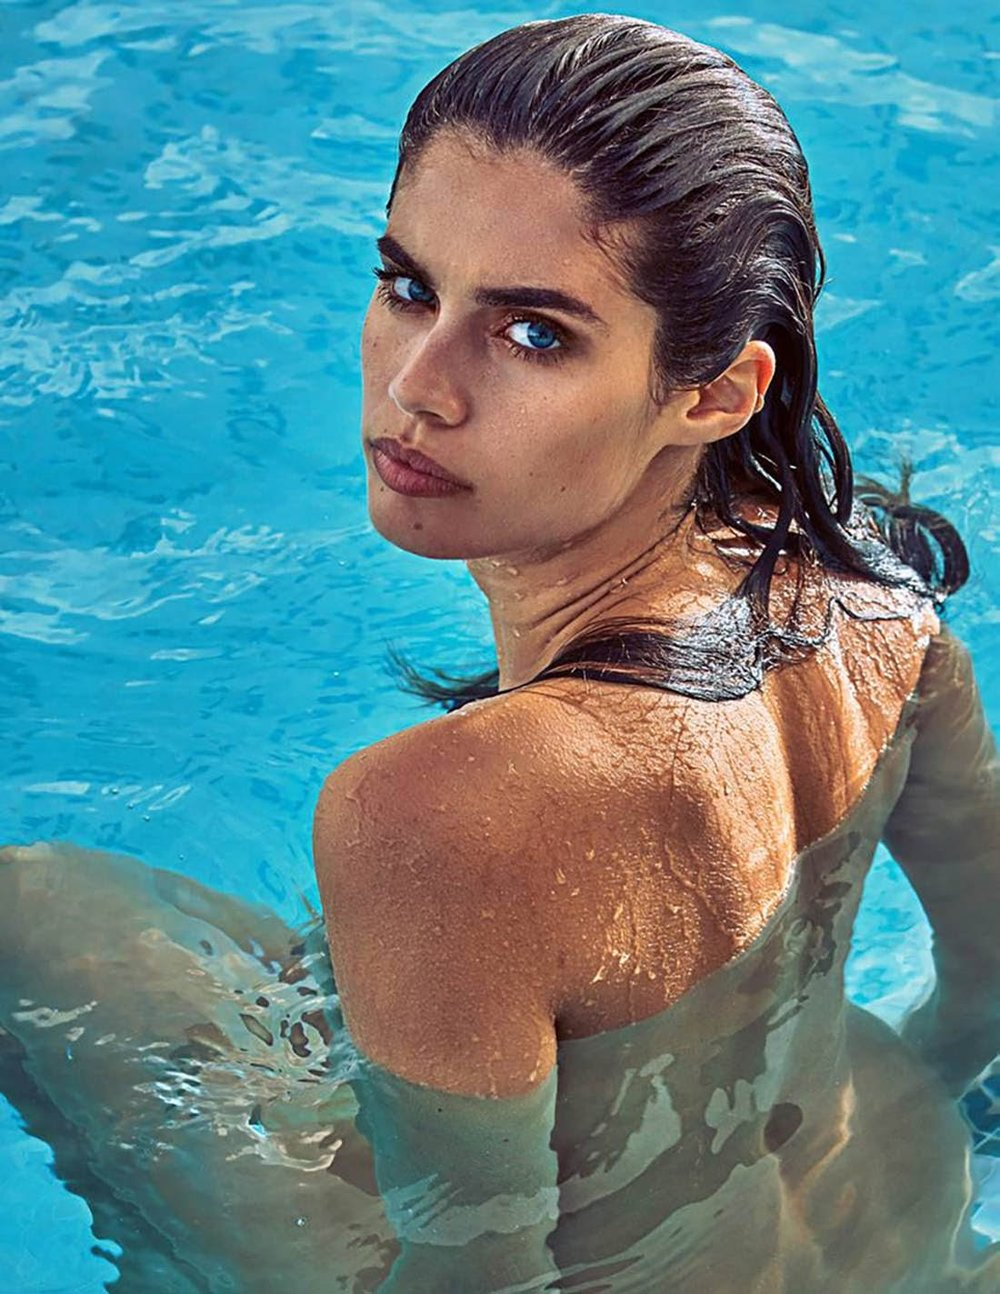 sara-sampaio-guy-aroch-madame-figaro-april-6-2018- (6).jpg